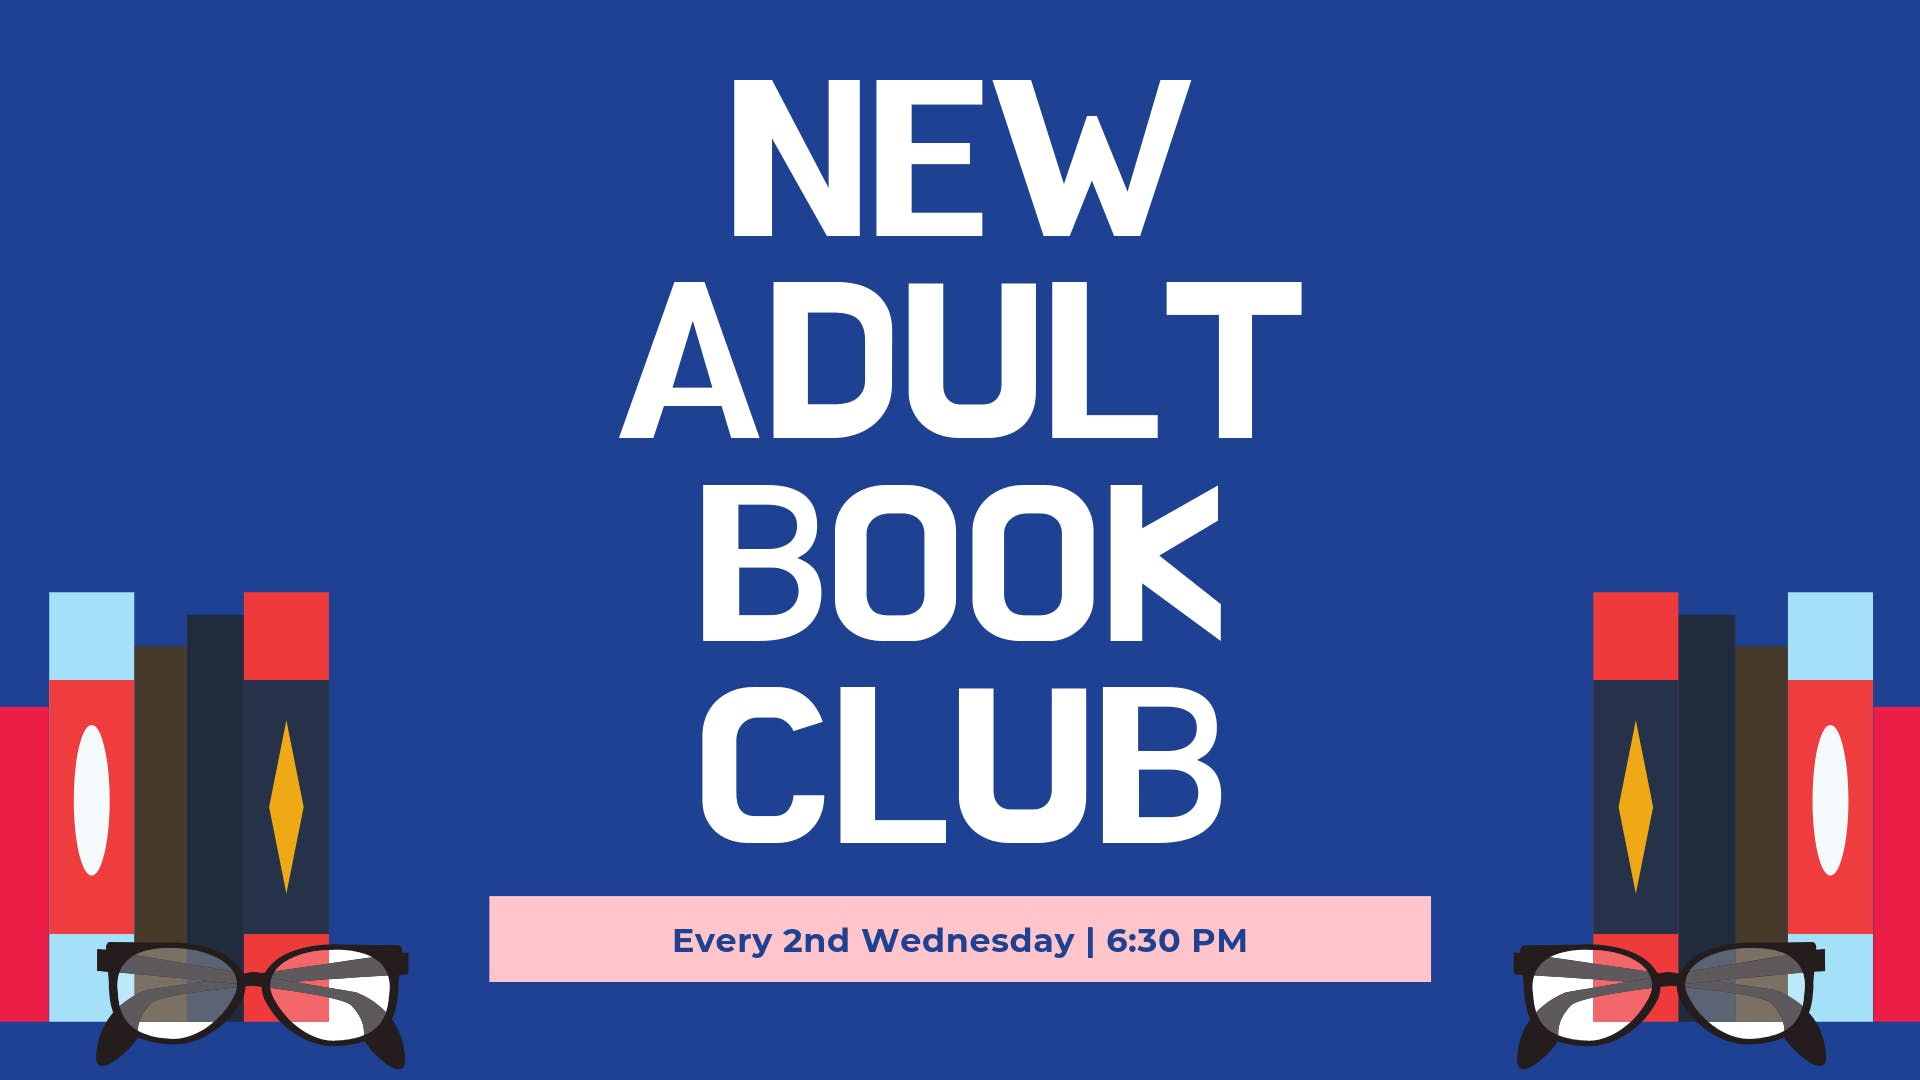 New Adult Book Club banner